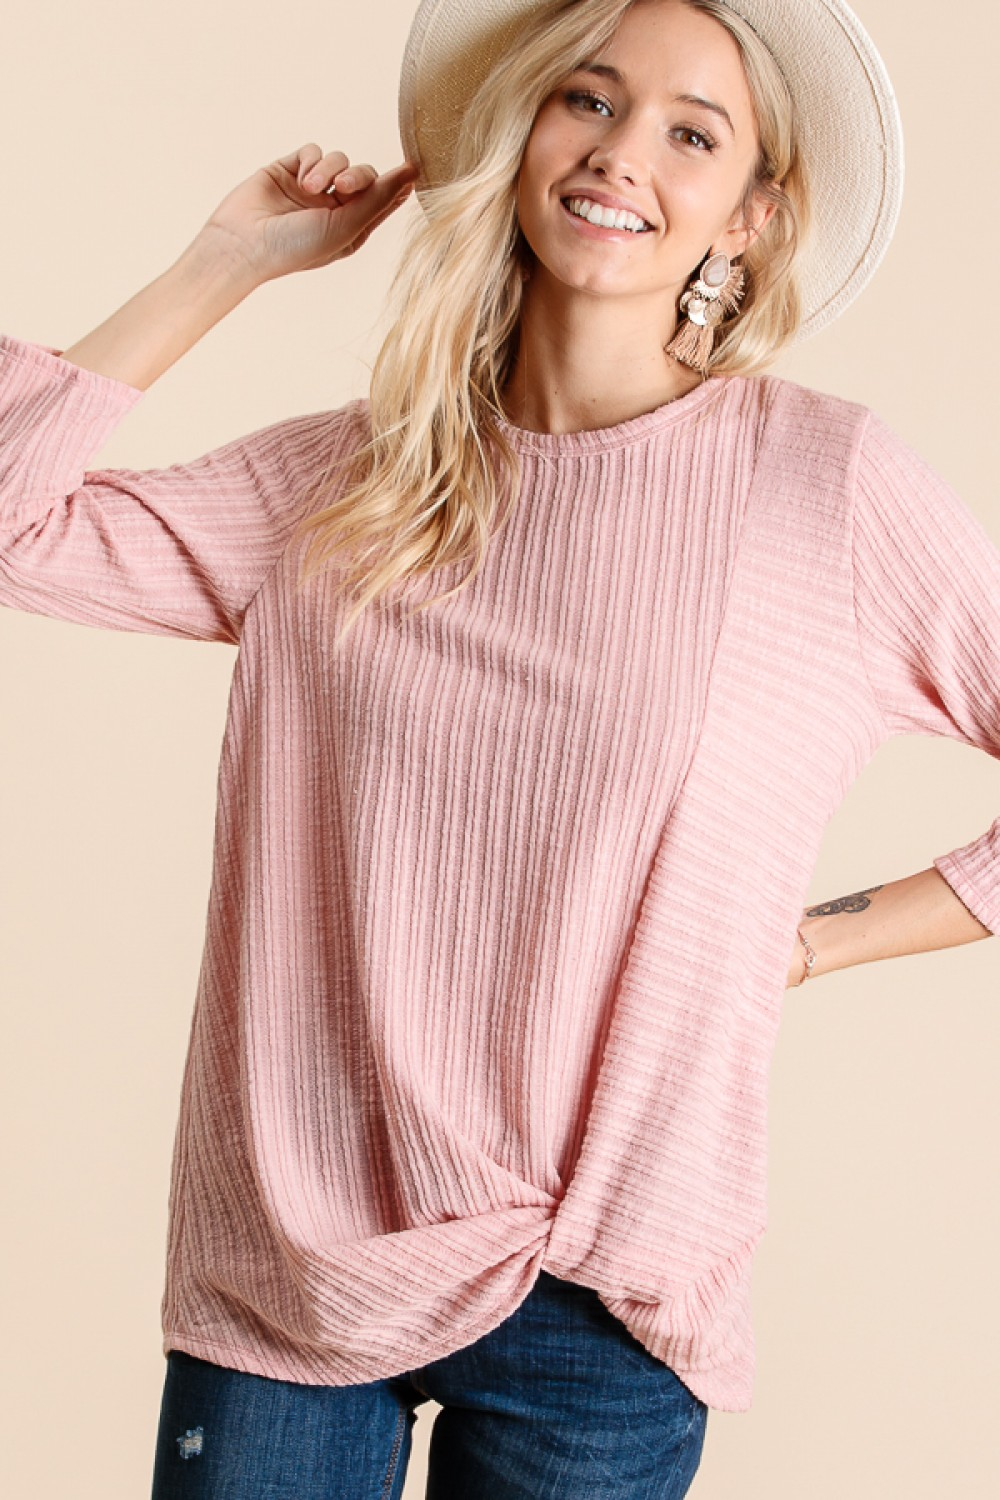 LT4024<br/>DOUBLE KNIT RIB ROUND NECK 3/4 FRONT TIE TOP :MADE IN USA